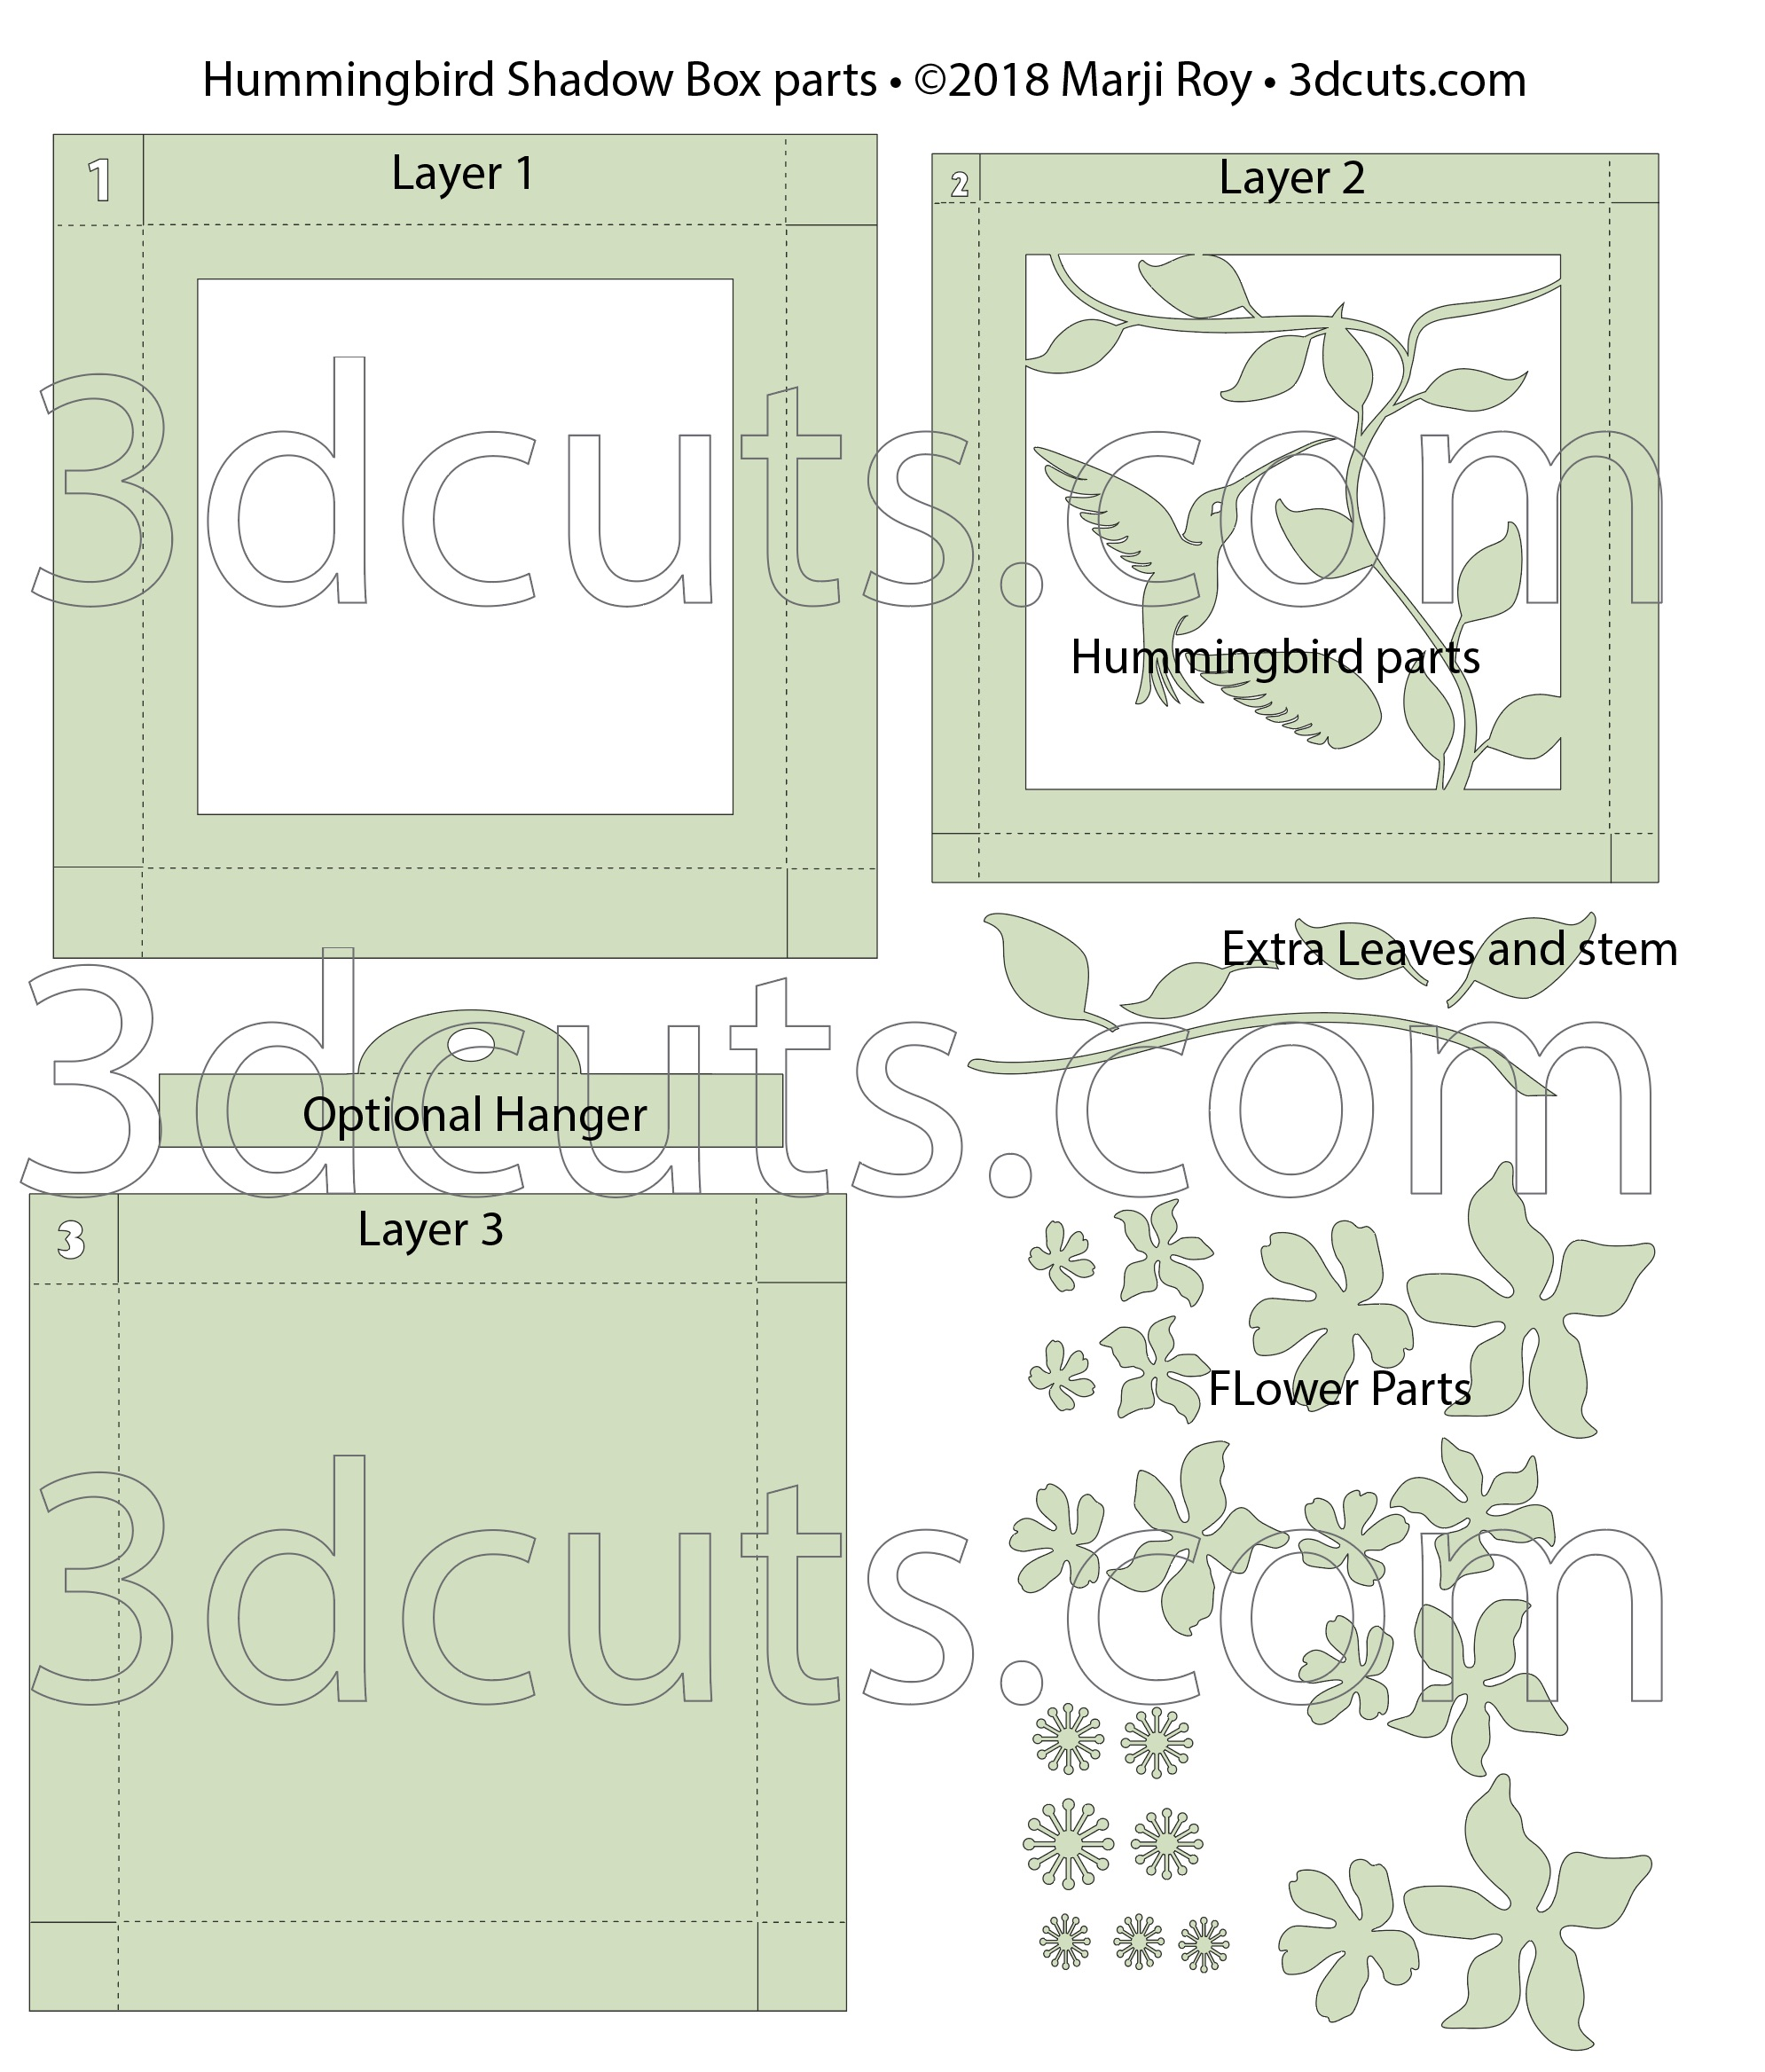 Layout for cutting files for Hummingbird Shadow Box by 3dCuts.com,by Marji Roy, 3D cutting files in .svg, .dxf, png and .pdf formats for use with Silhouette, Cricut and Brother cutting machines, paper crafting files,SVG Files